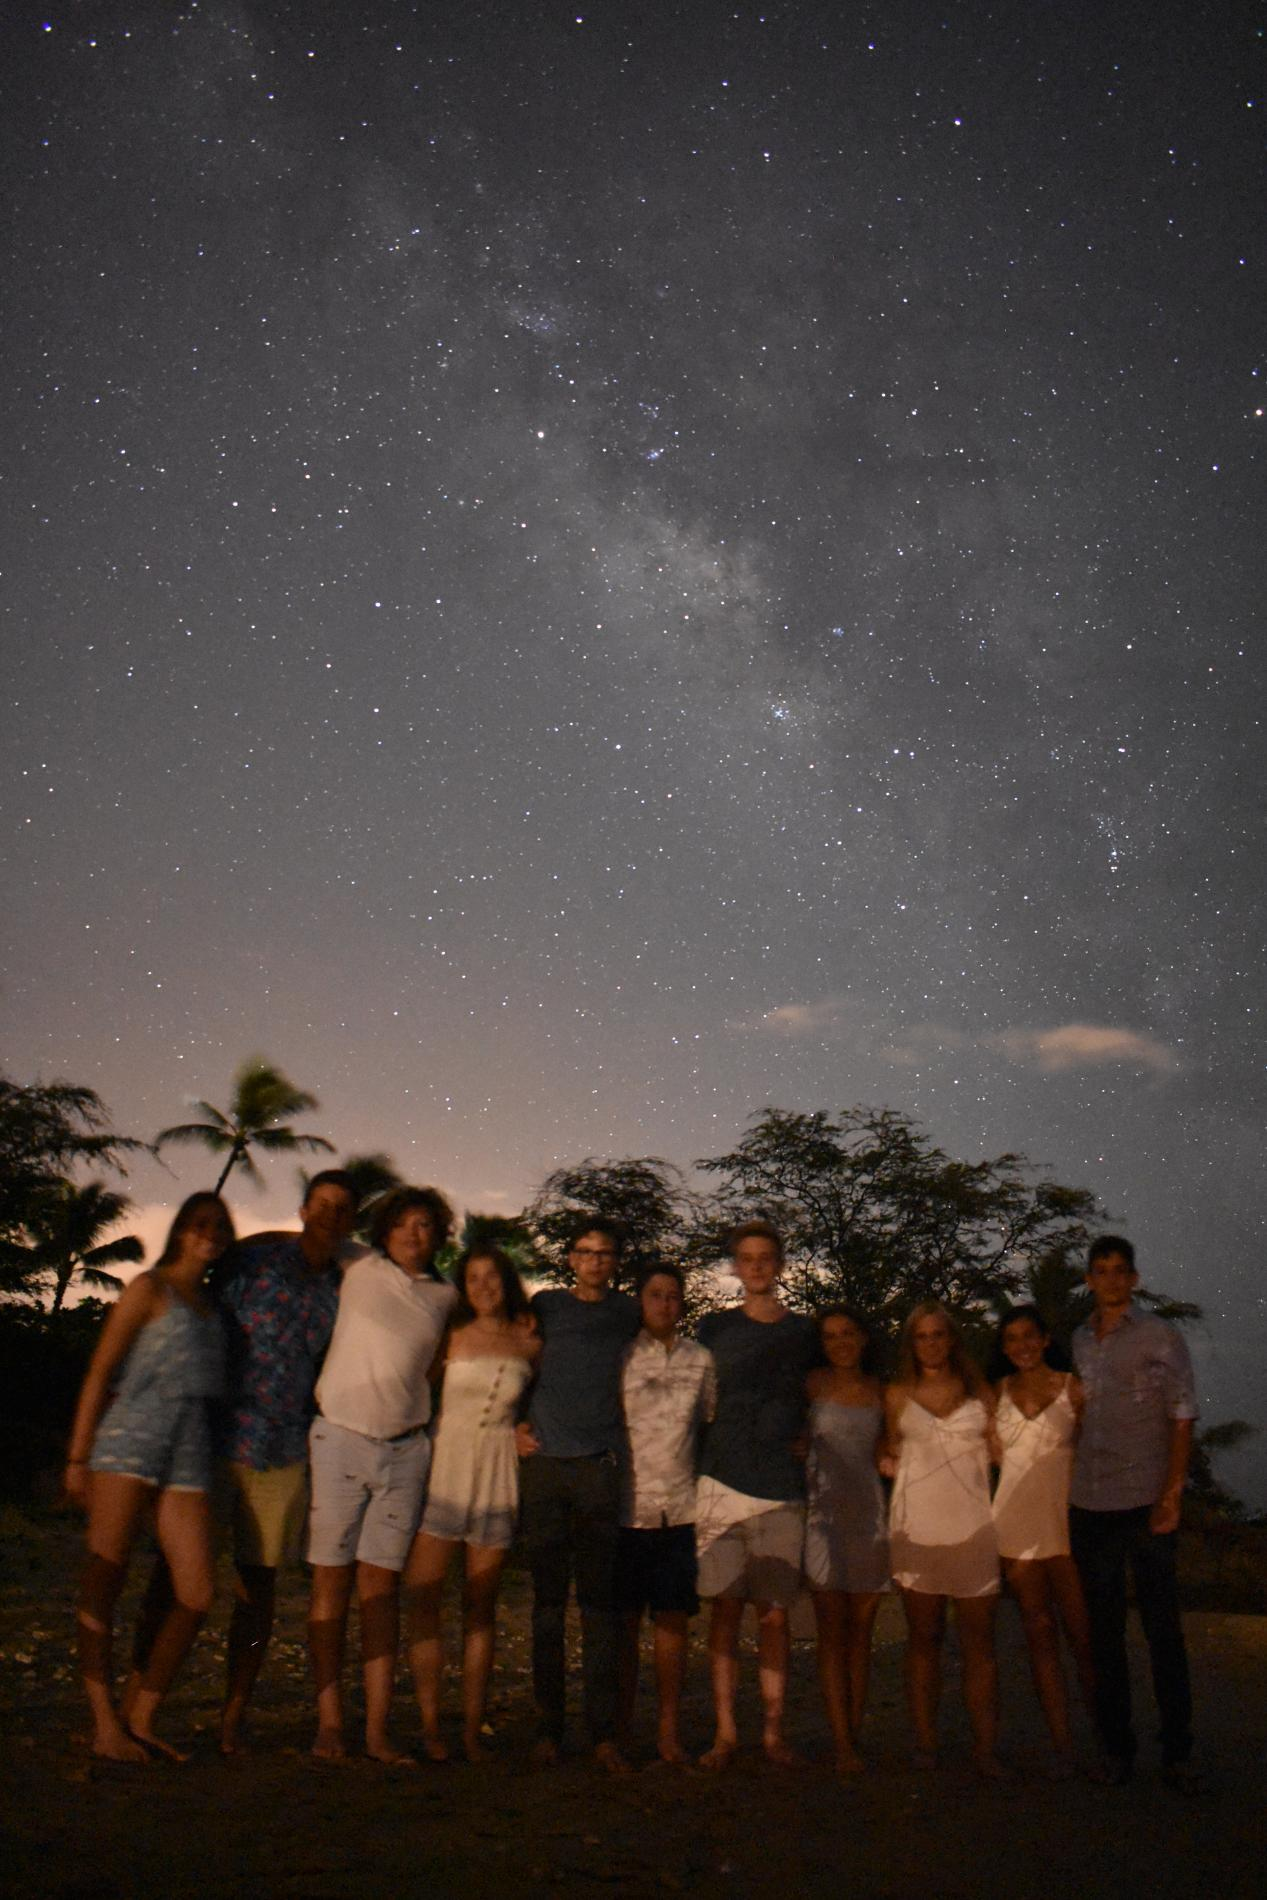 A group of students poses under the starry night sky on their teen tour of Hawaii and Australia.